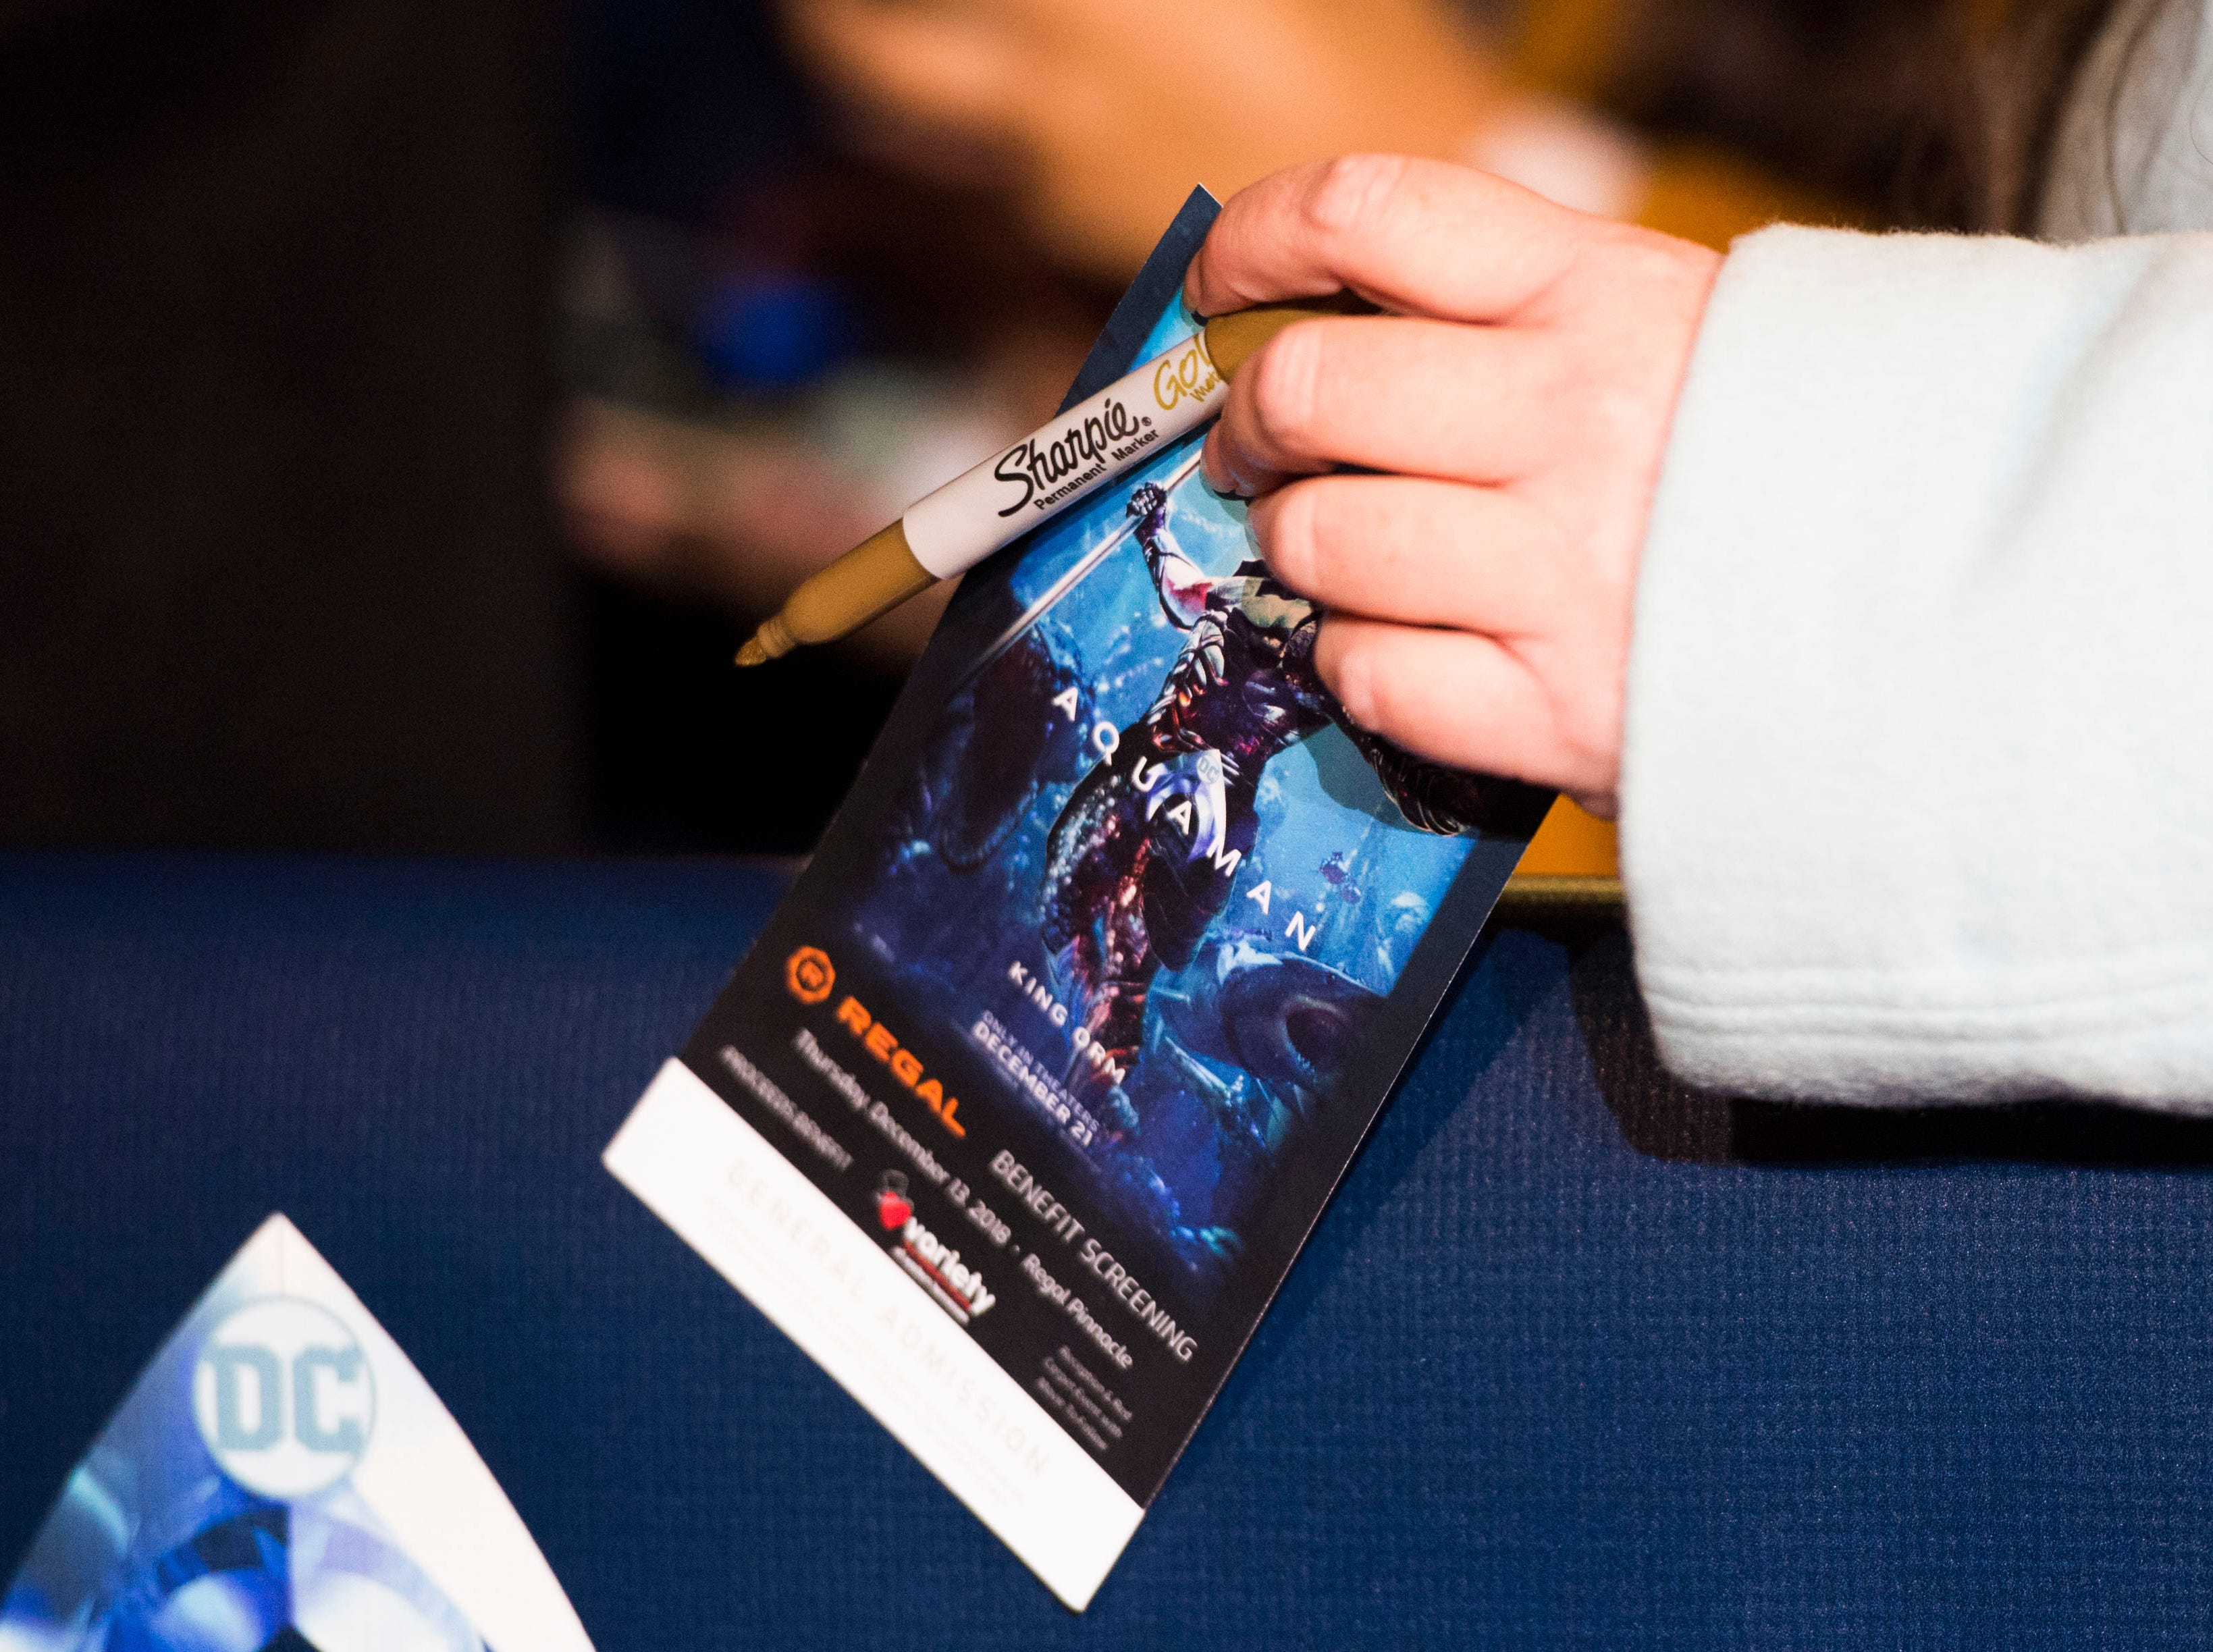 """A fan stands ready for an autograph from """"Aquaman"""" star Patrick Wilson at Regal's annual red carpet premiere for Variety at Regal Pinnacle Stadium 18, Thursday, Dec. 13, 2018."""